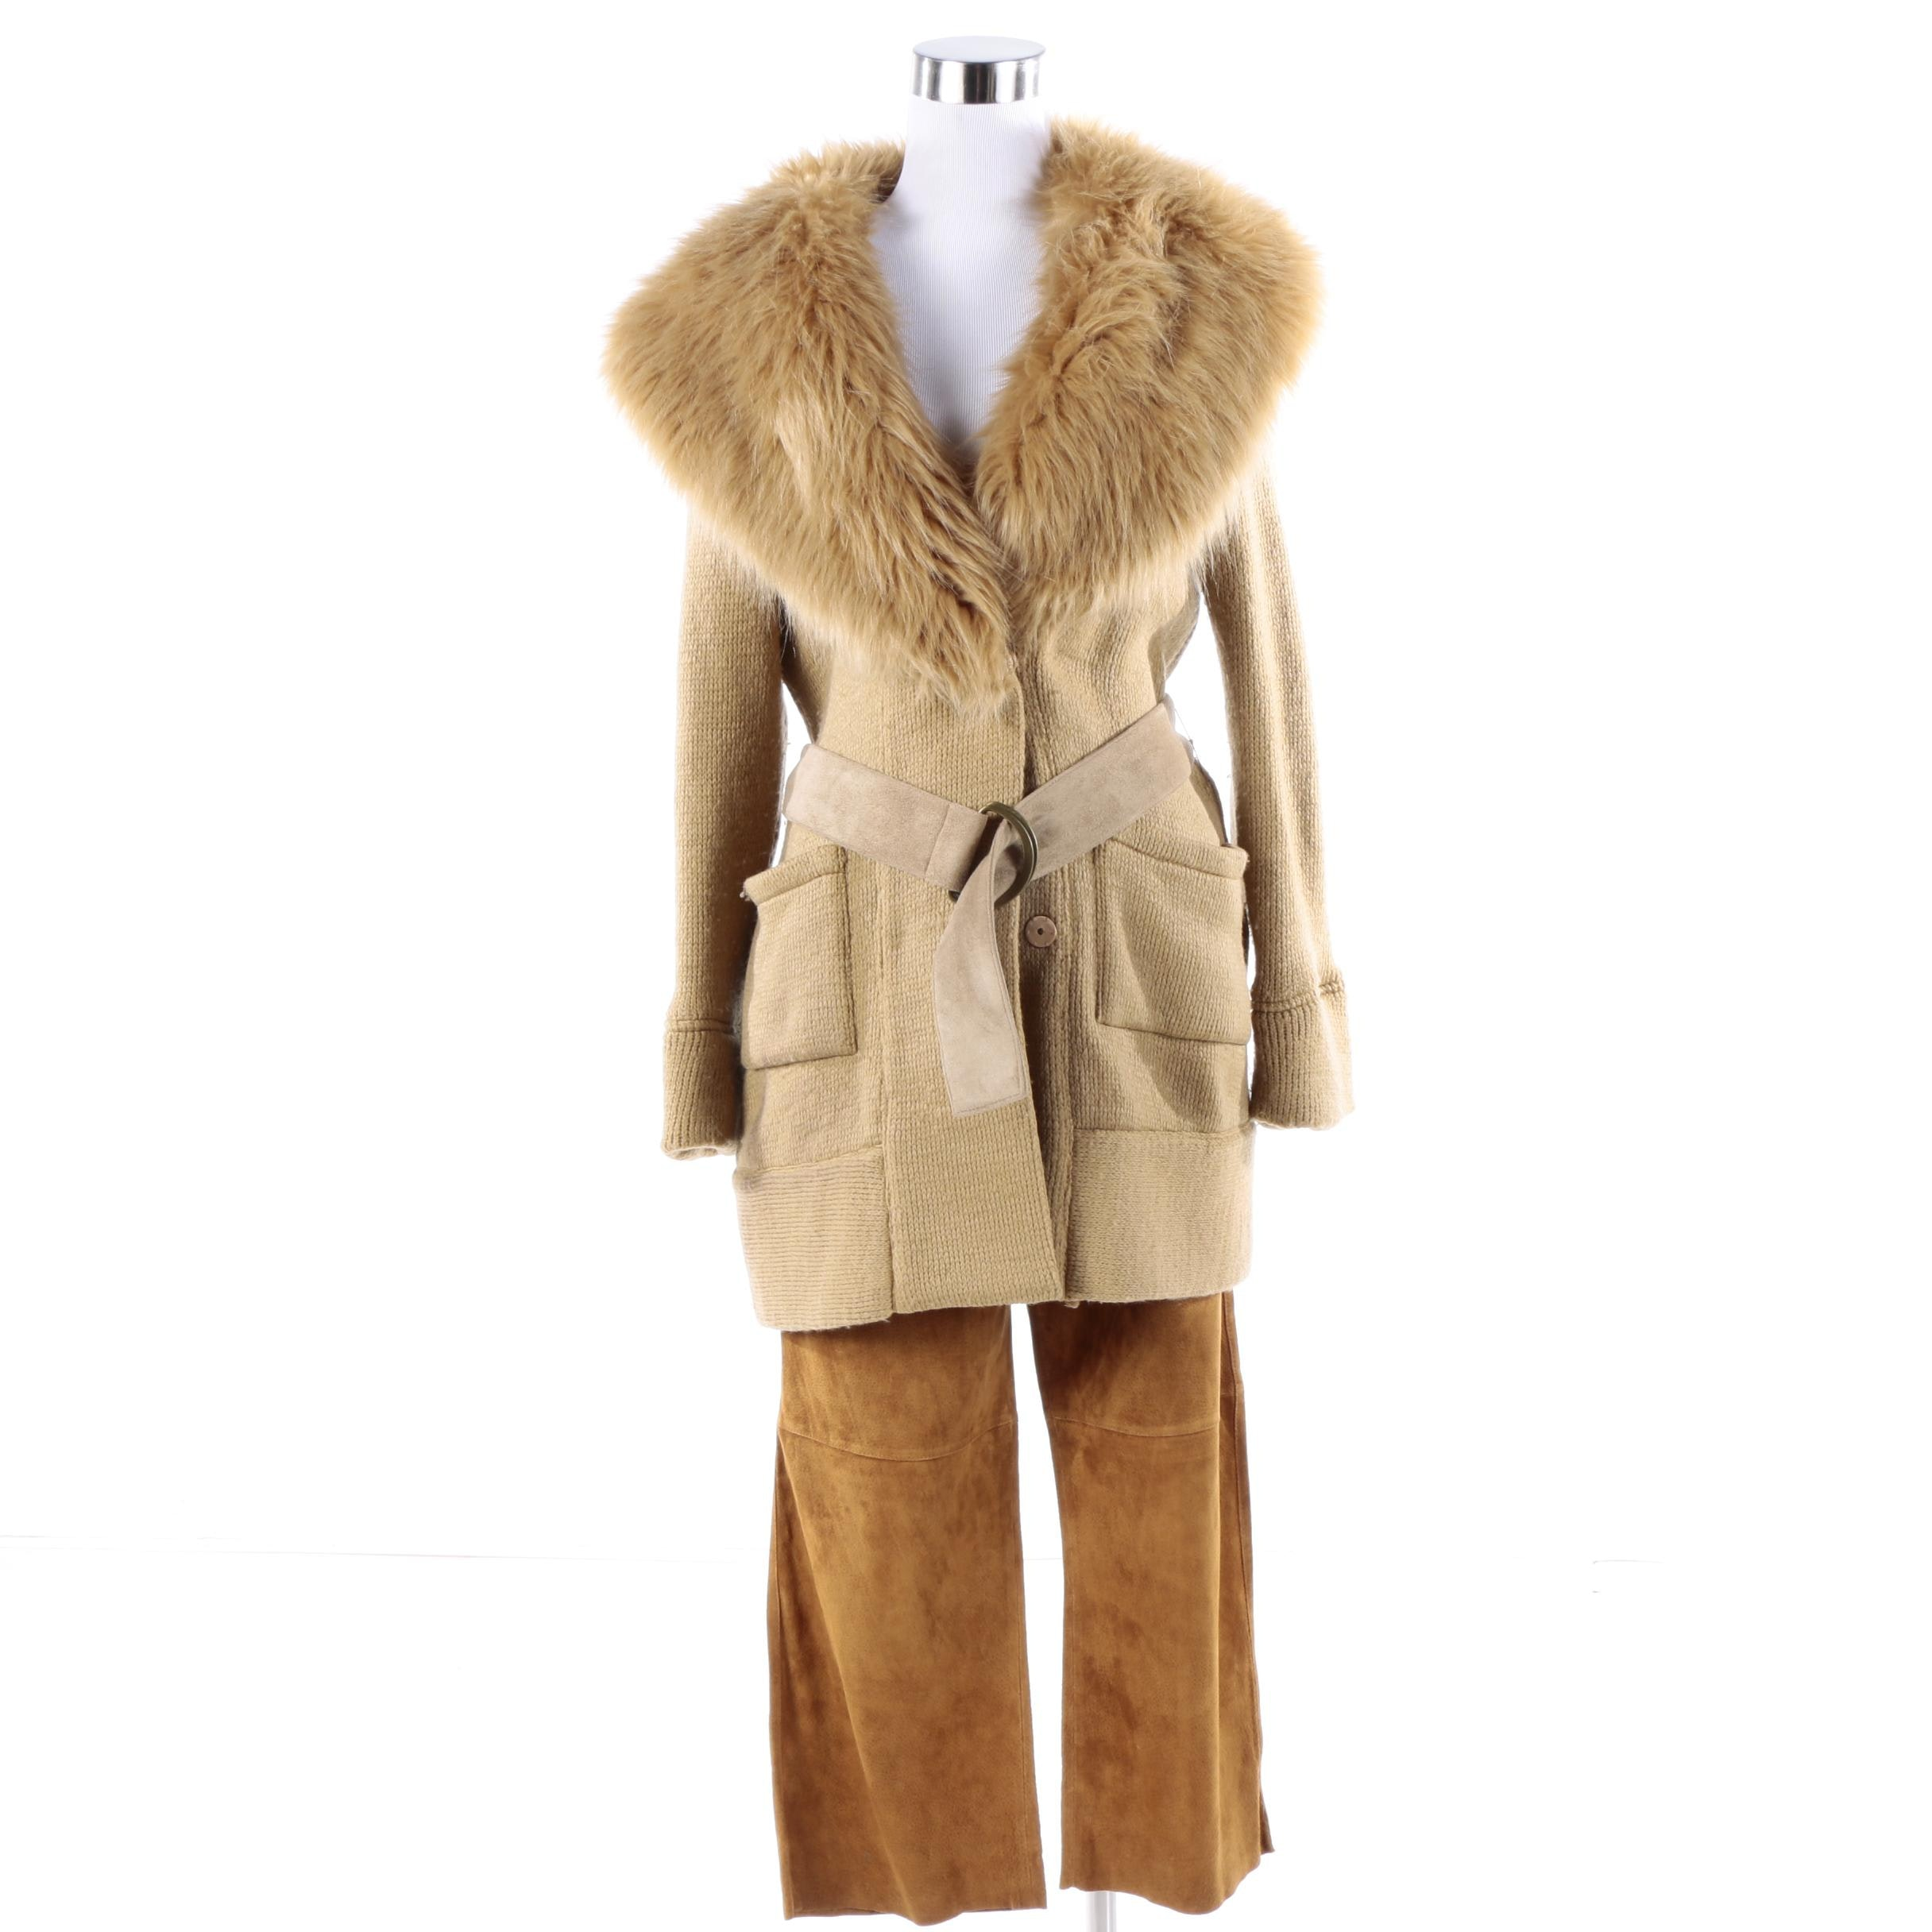 Express Suede Leather Pants and Luxe by Irina Cardigan with Faux Fur Collar